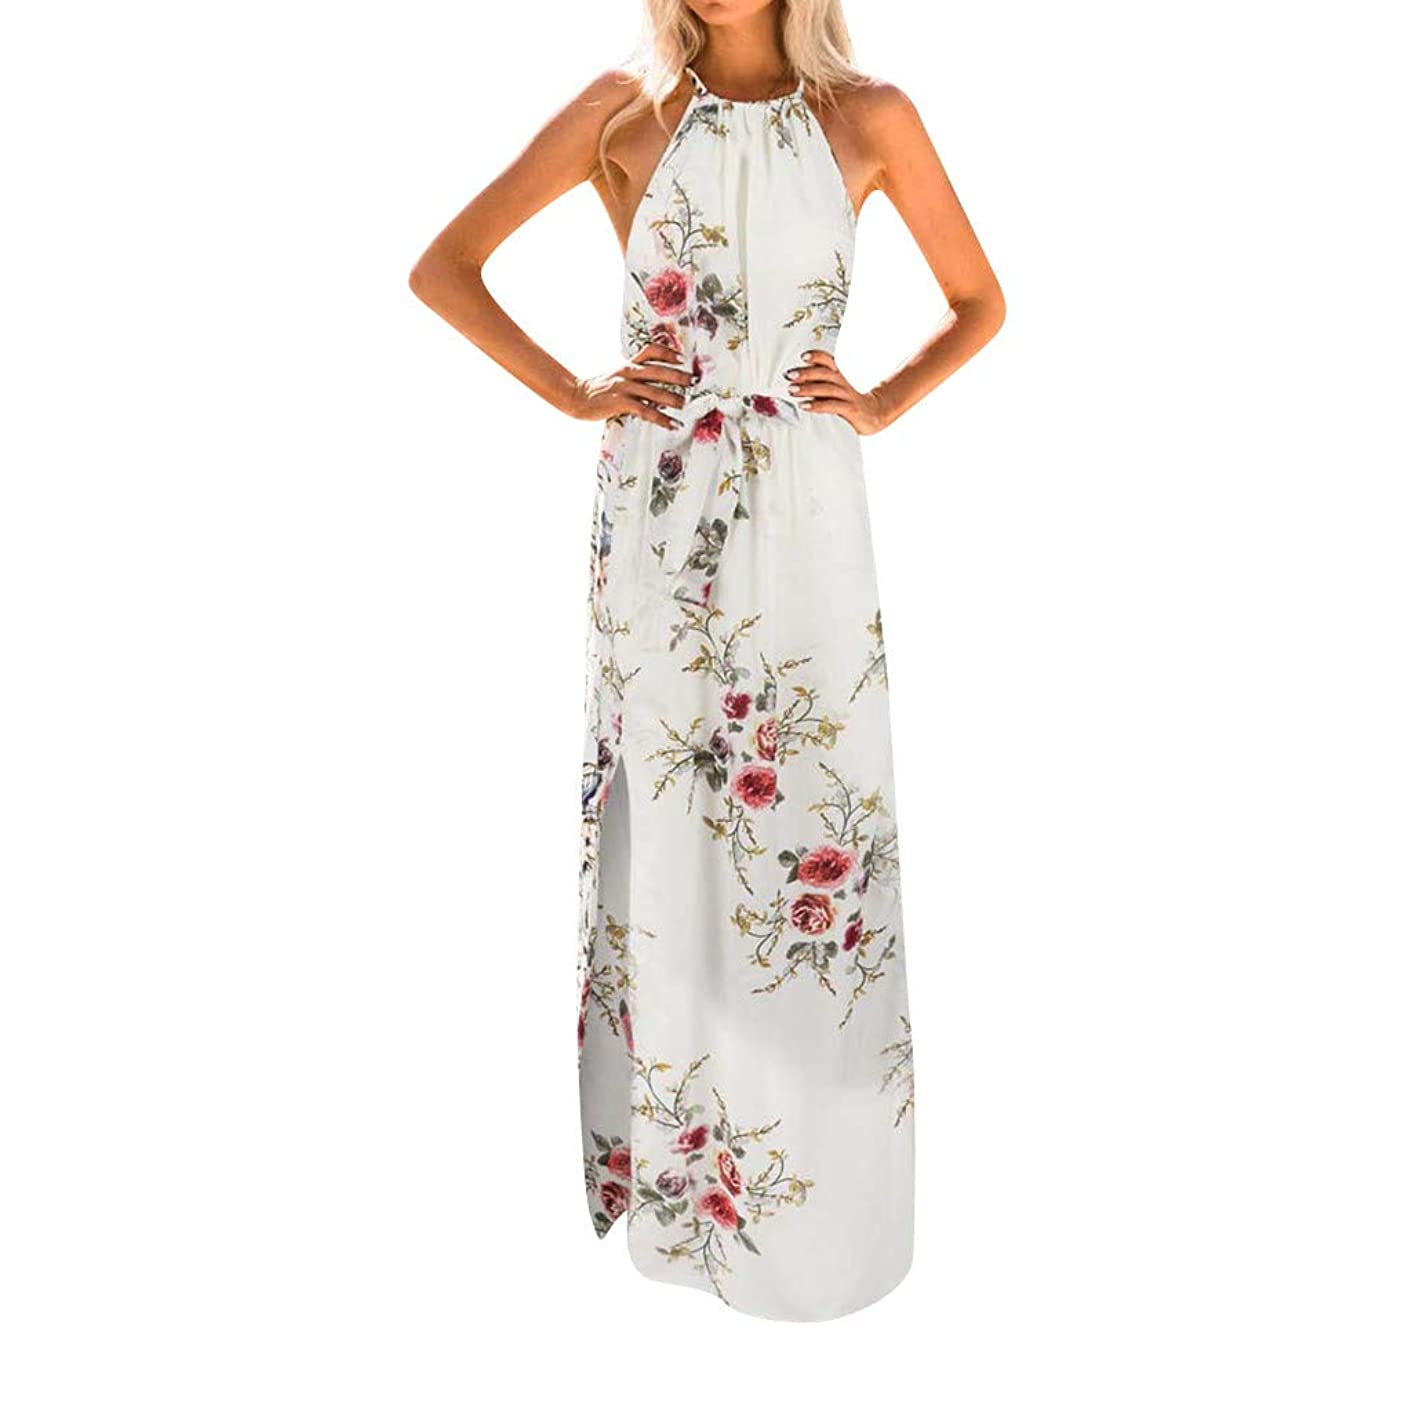 Realdo Women Boho Floral Print Halter Loose Sleeveless Chiffon Corset Maxi Dress